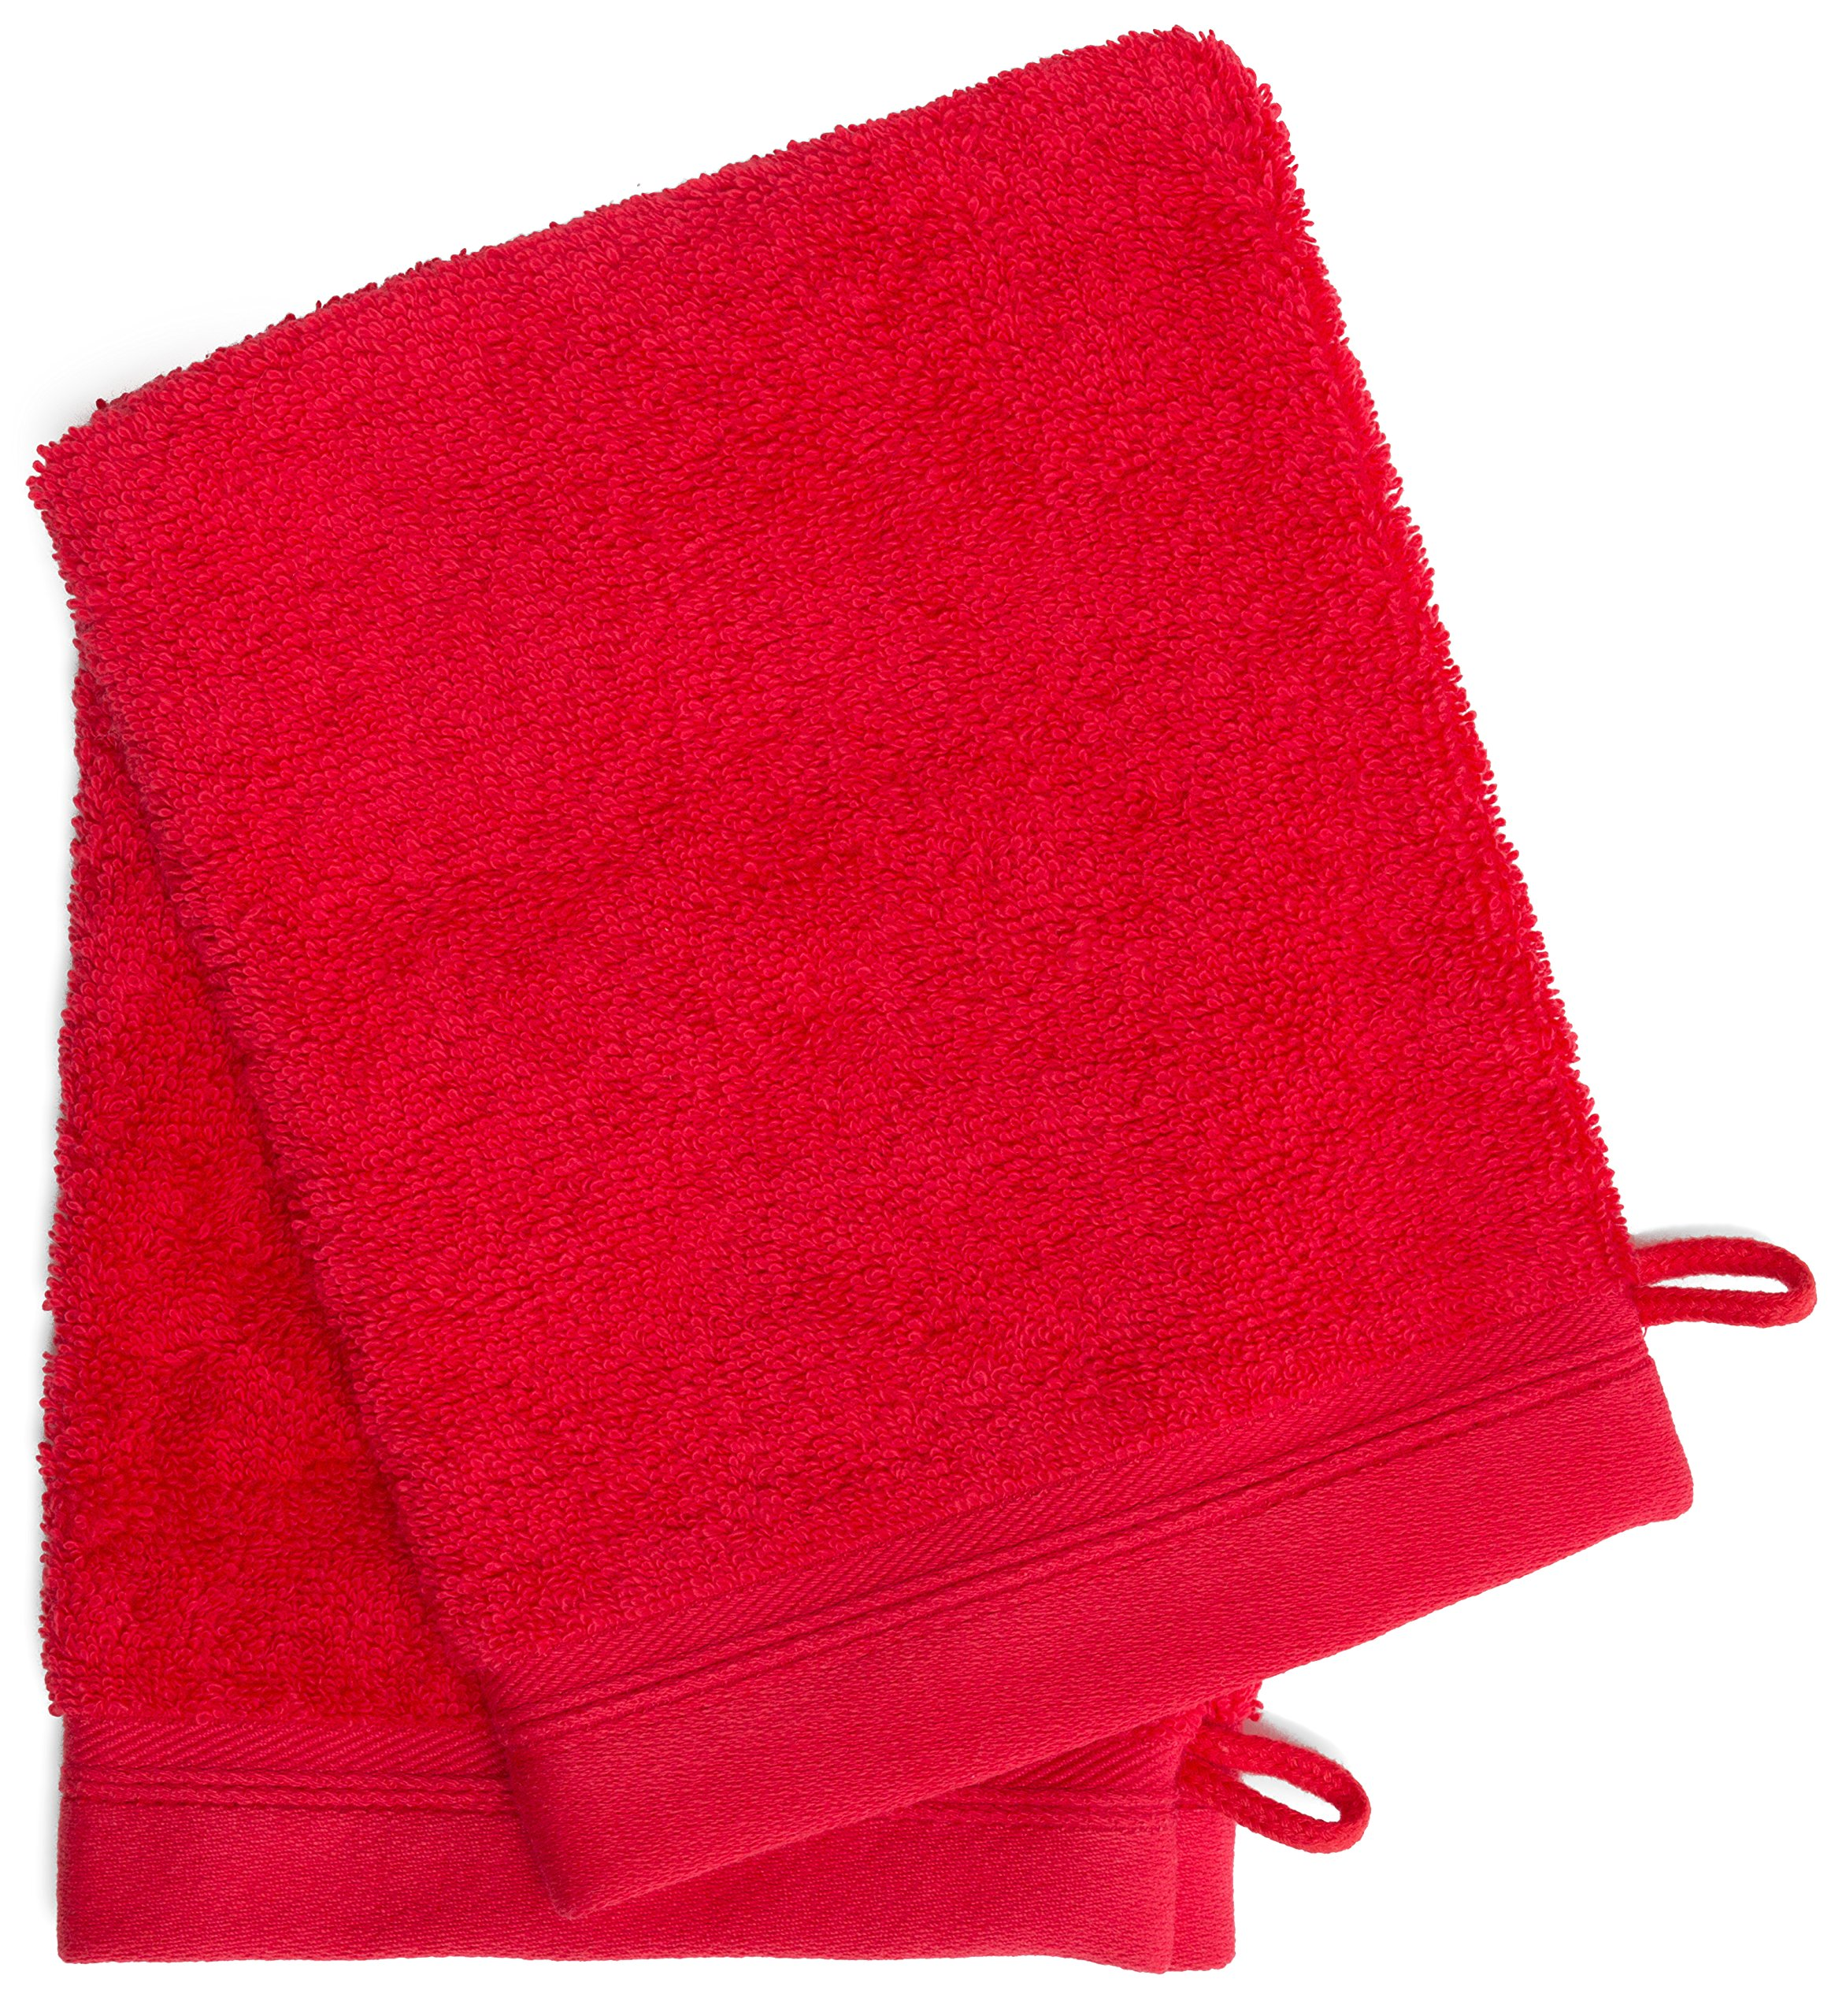 France Luxe Body French-Style Bath Mitt 2-Pack - Red/Red